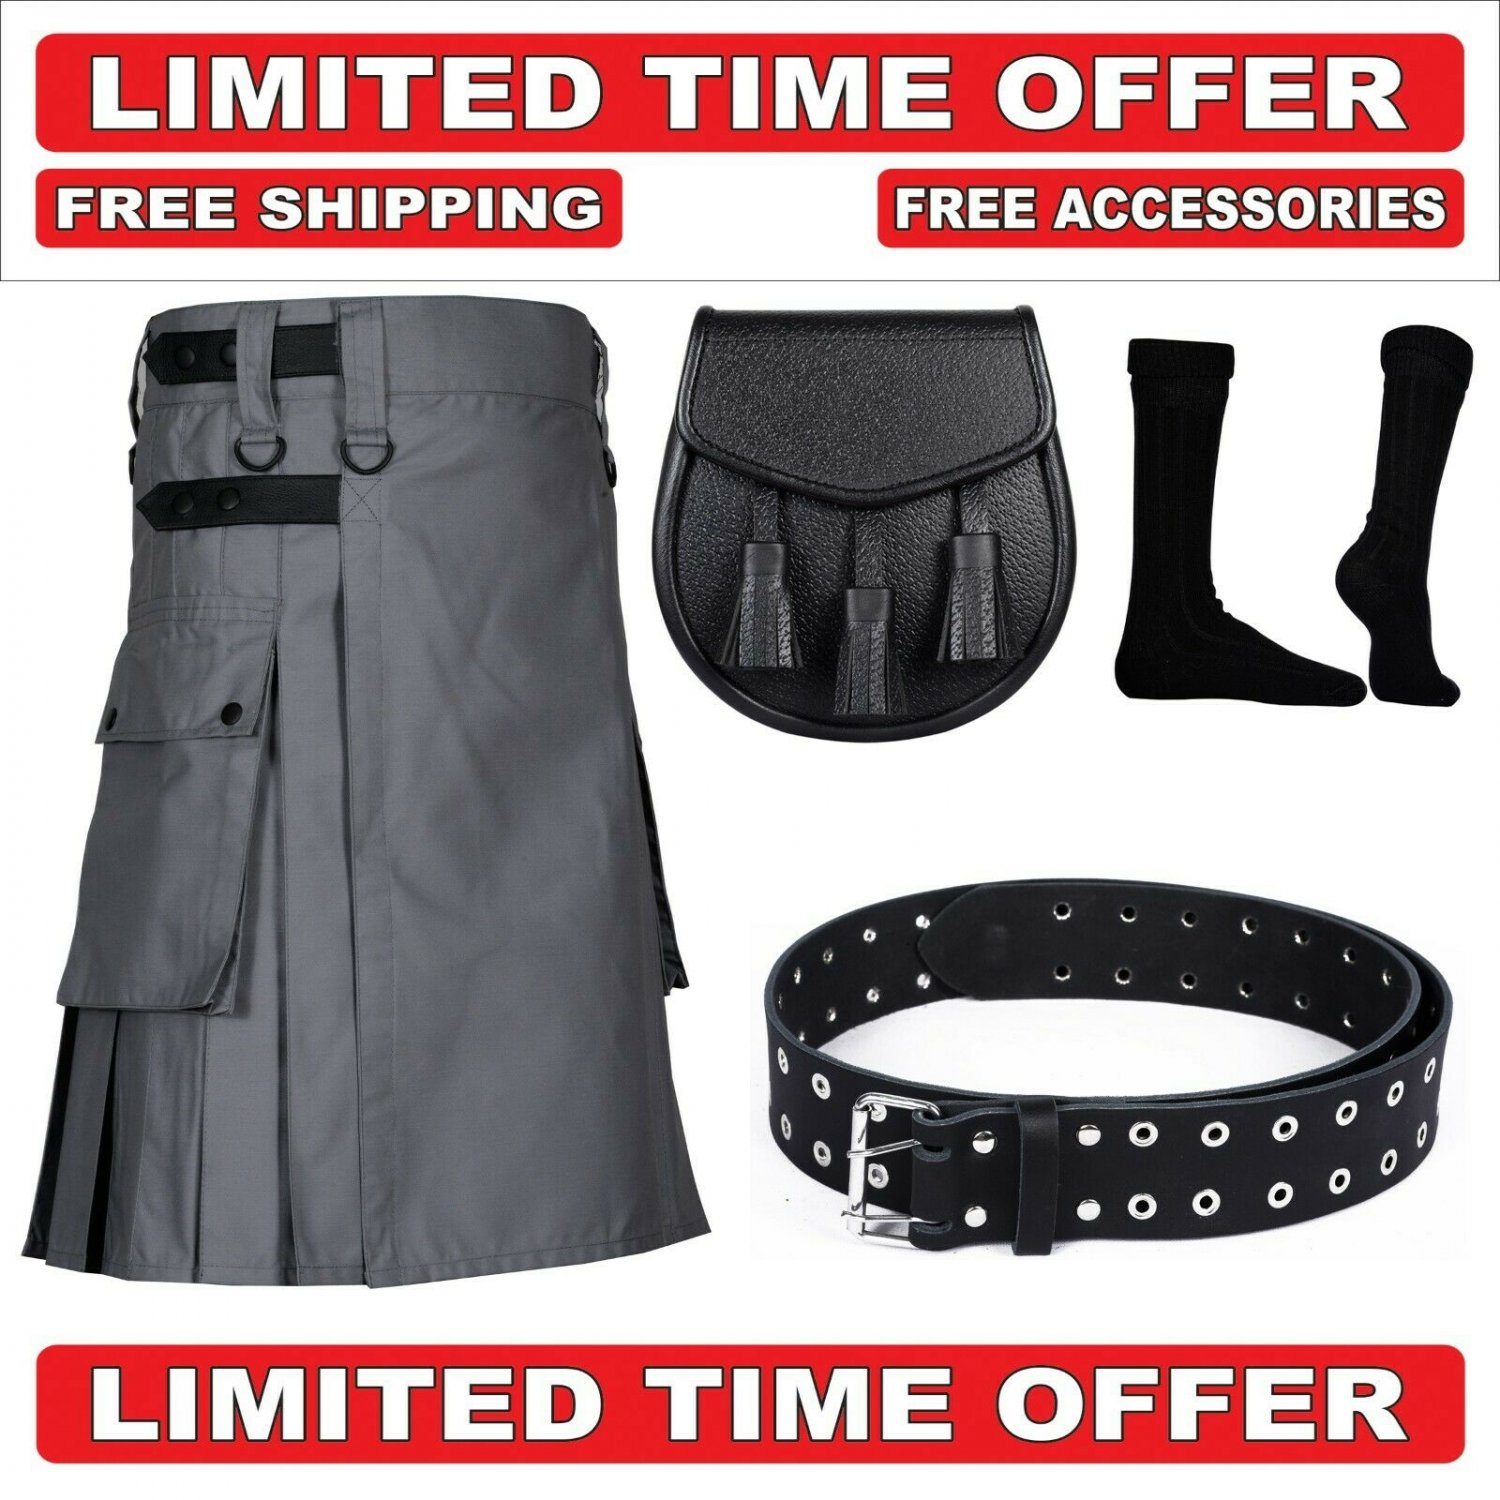 42 size grey Men's Cotton Utility Scottish Kilt With Free Accessories and Free Shipping